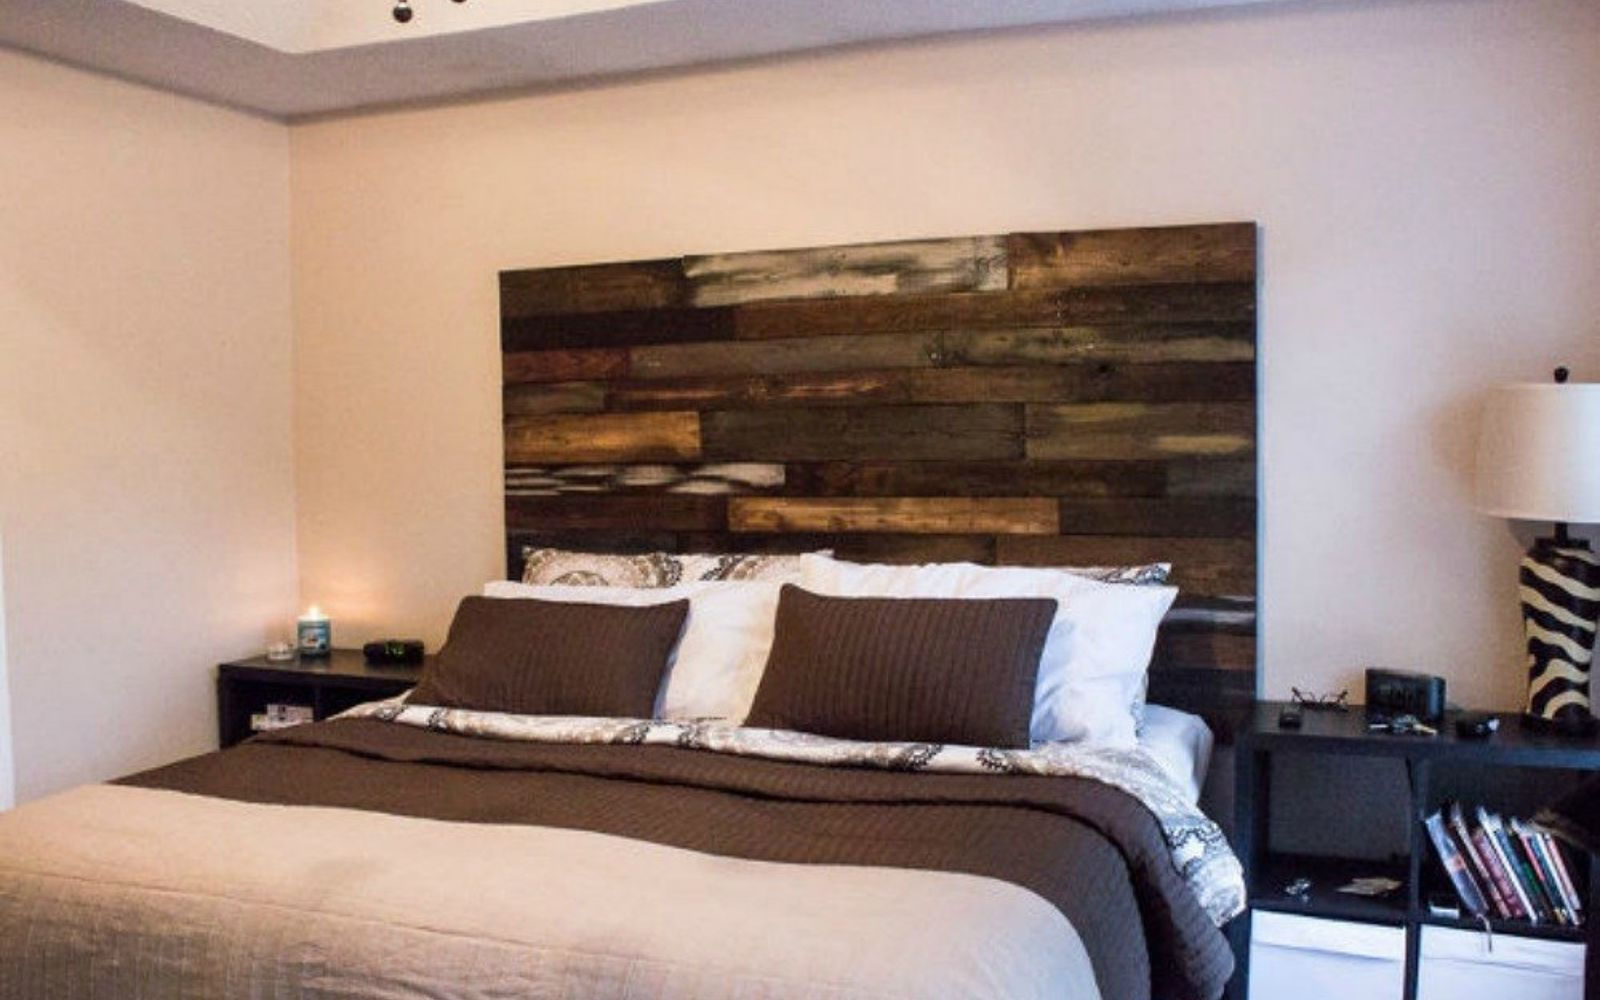 s these are the diy headboard ideas you ve been dreaming of, This stained pallet stunner